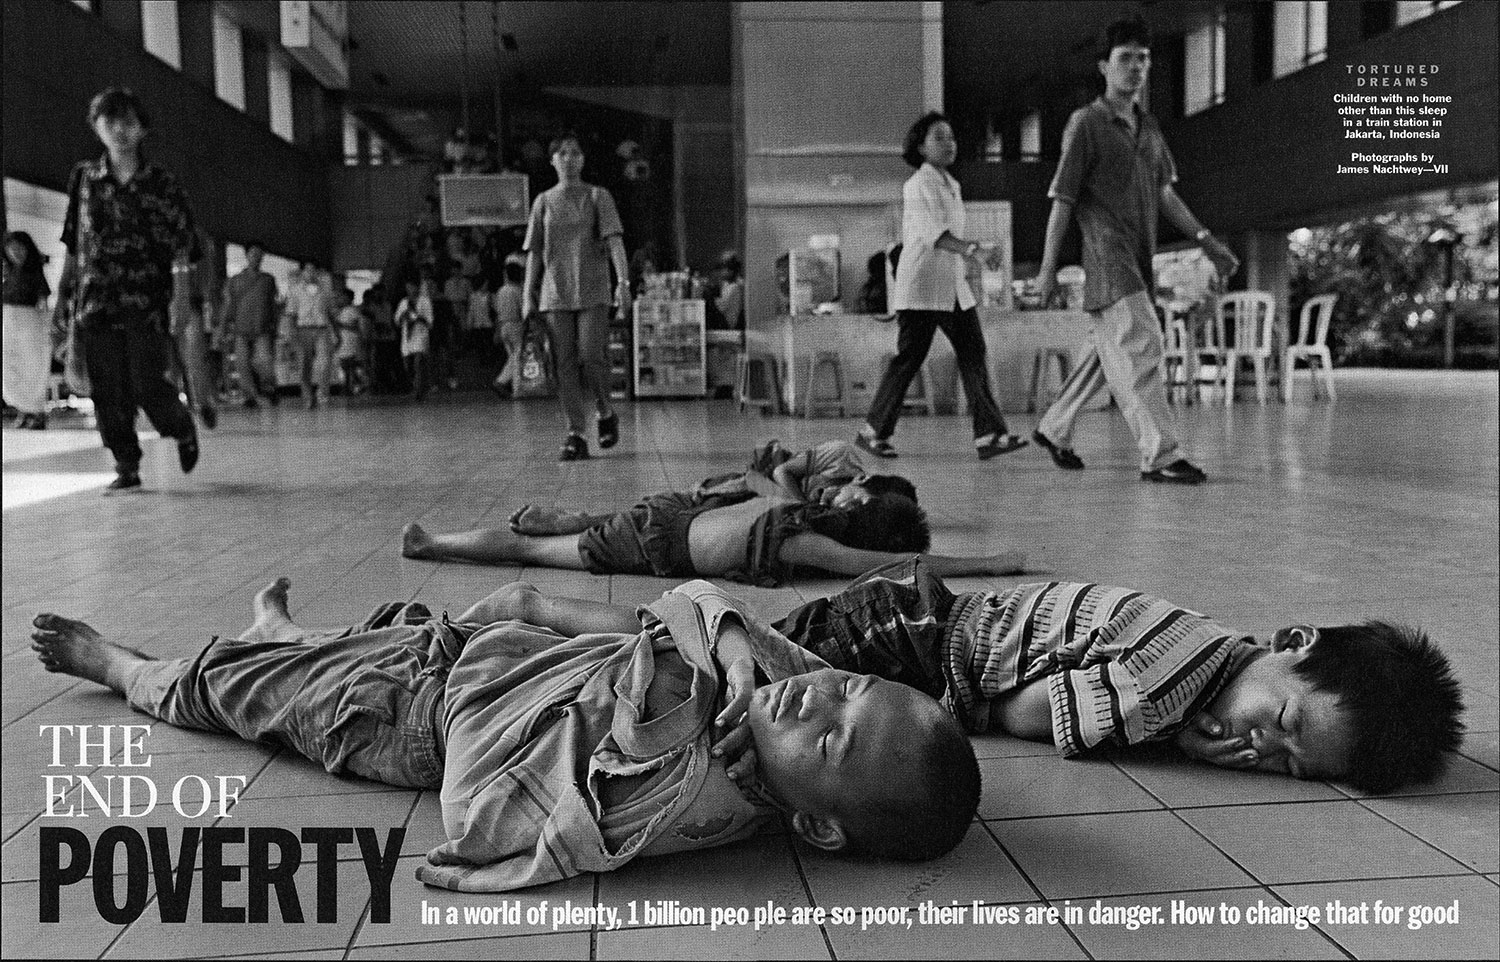 From  The End of Poverty.  March 14, 2005 International issue.